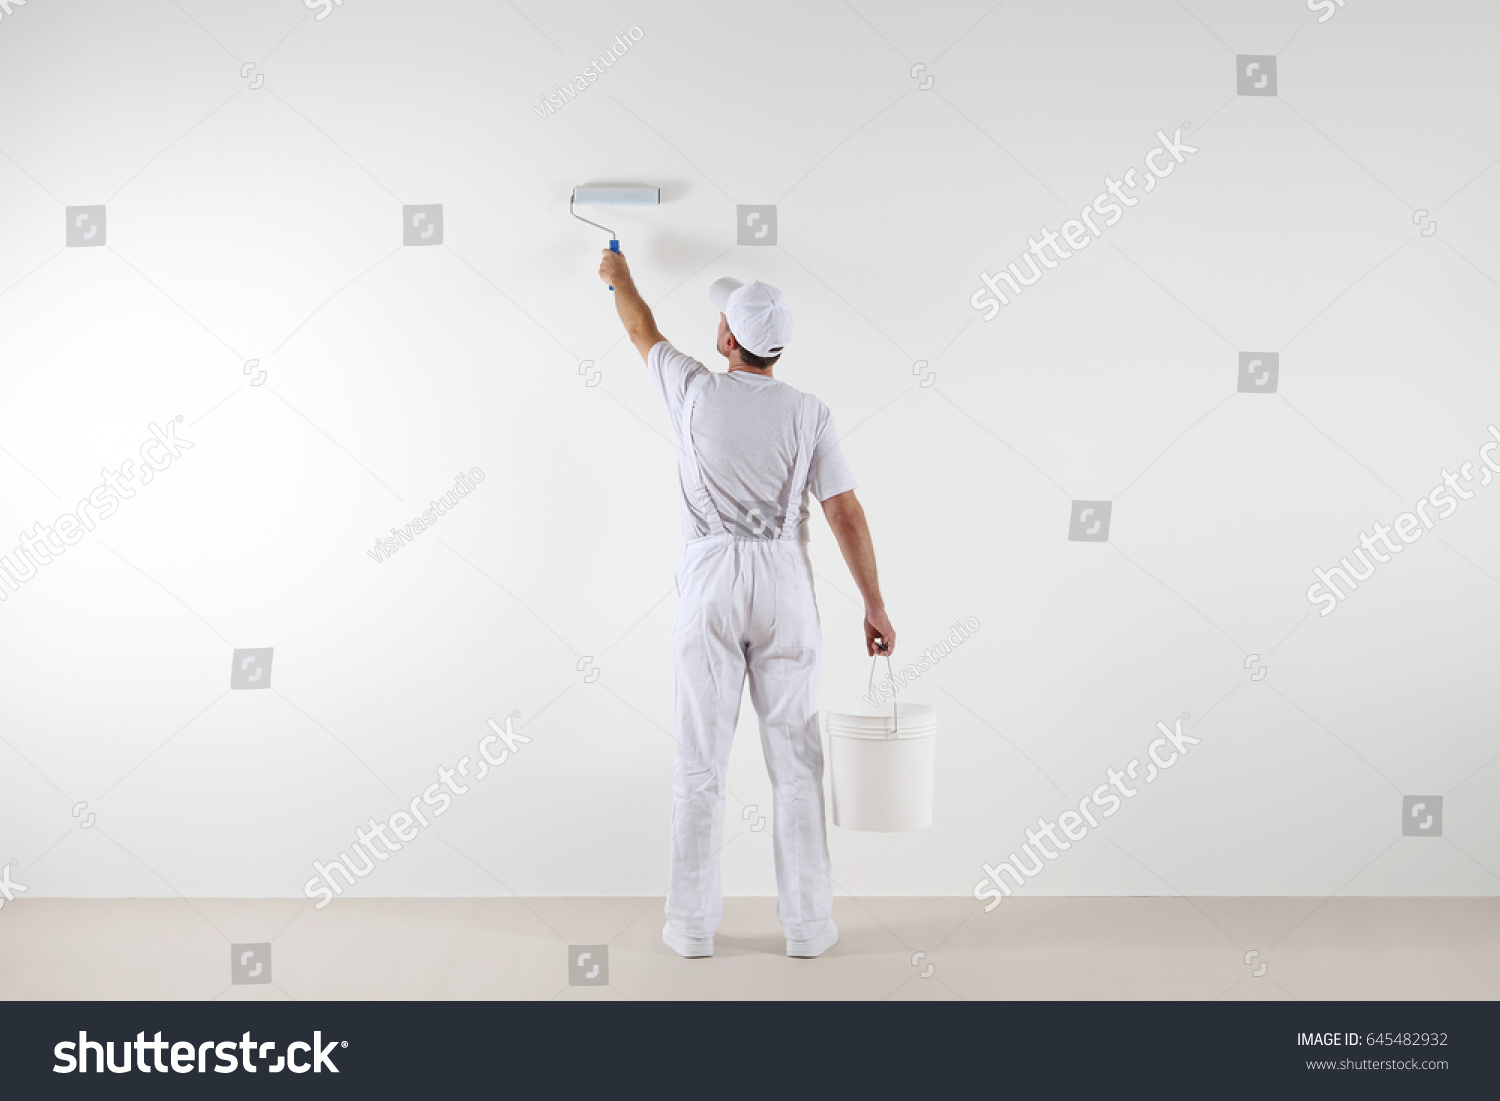 Rear View Painter Man Painting Wall Stock Photo 645482932 Shutterstock